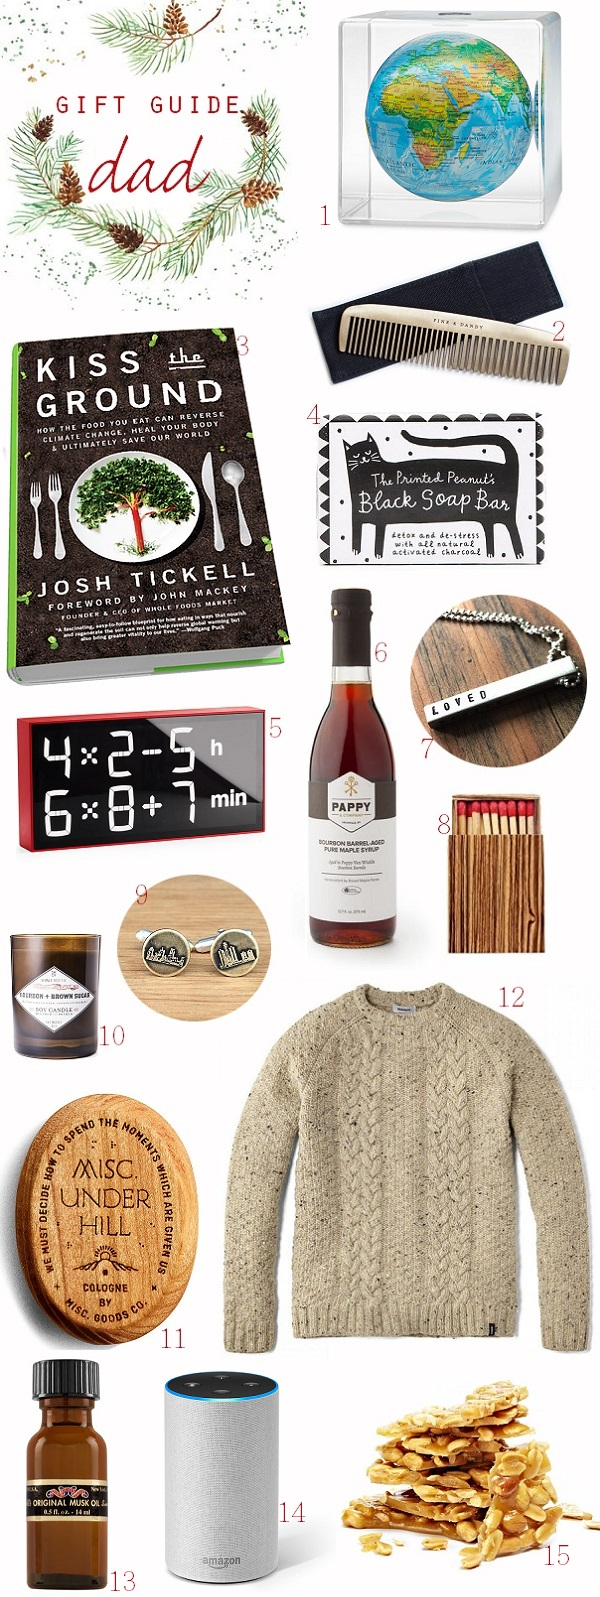 since this morning was all about moms now its time to talk dads so here are 15 gift ideas for those dads in your life who give the warmest hugs